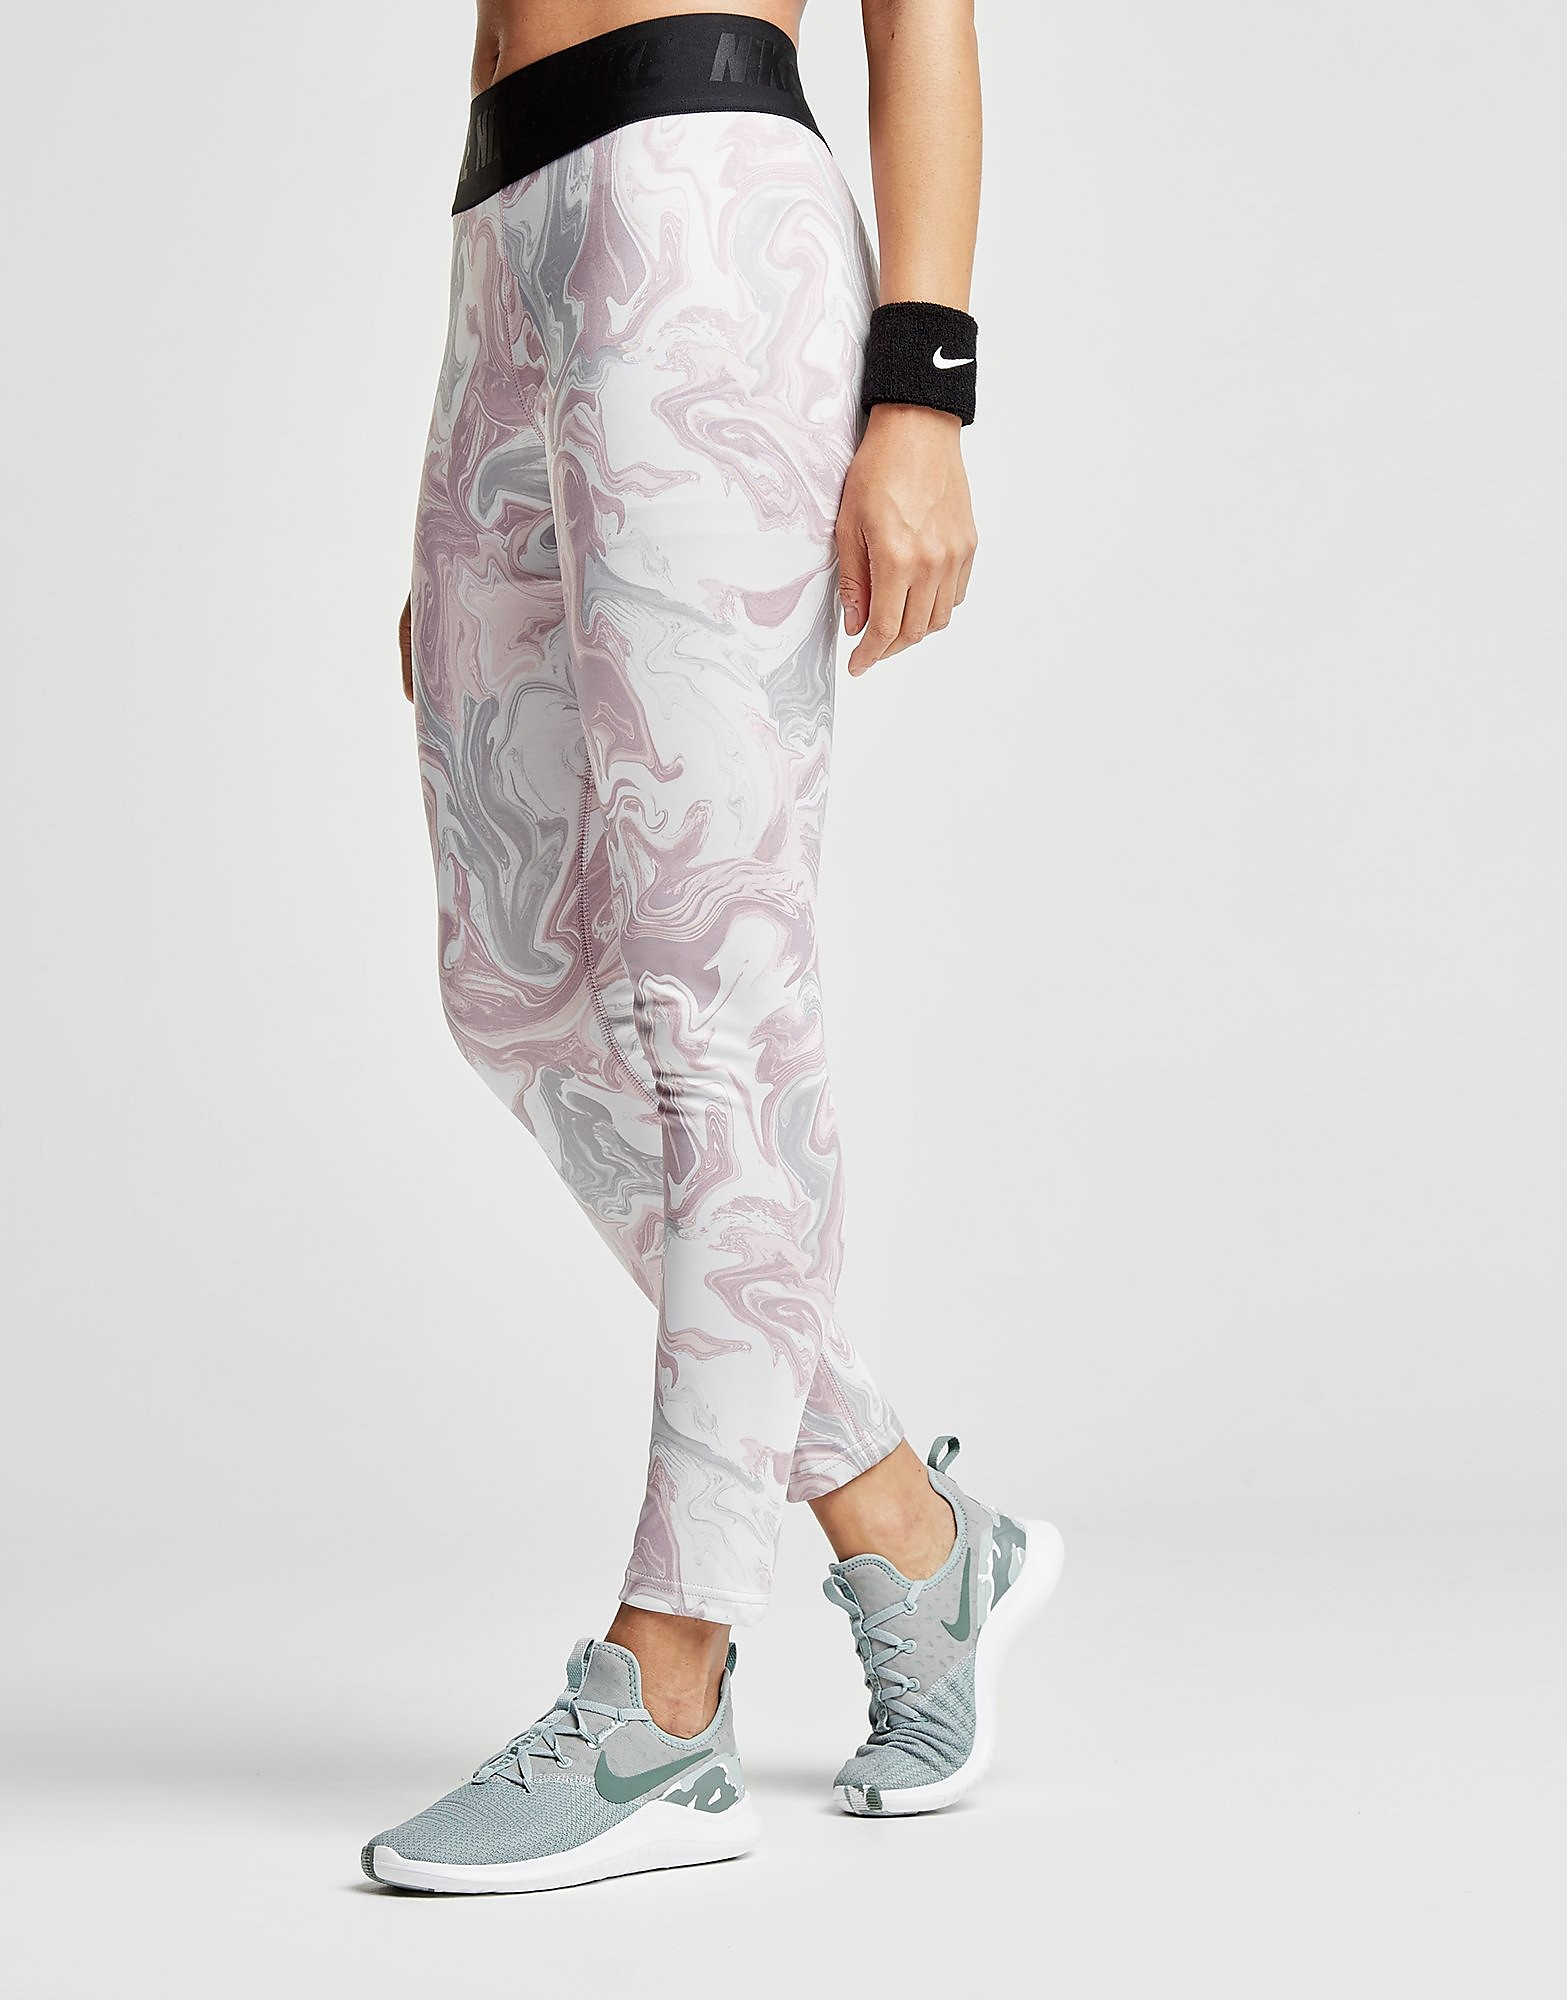 Nike Marble All Over Print Leggings